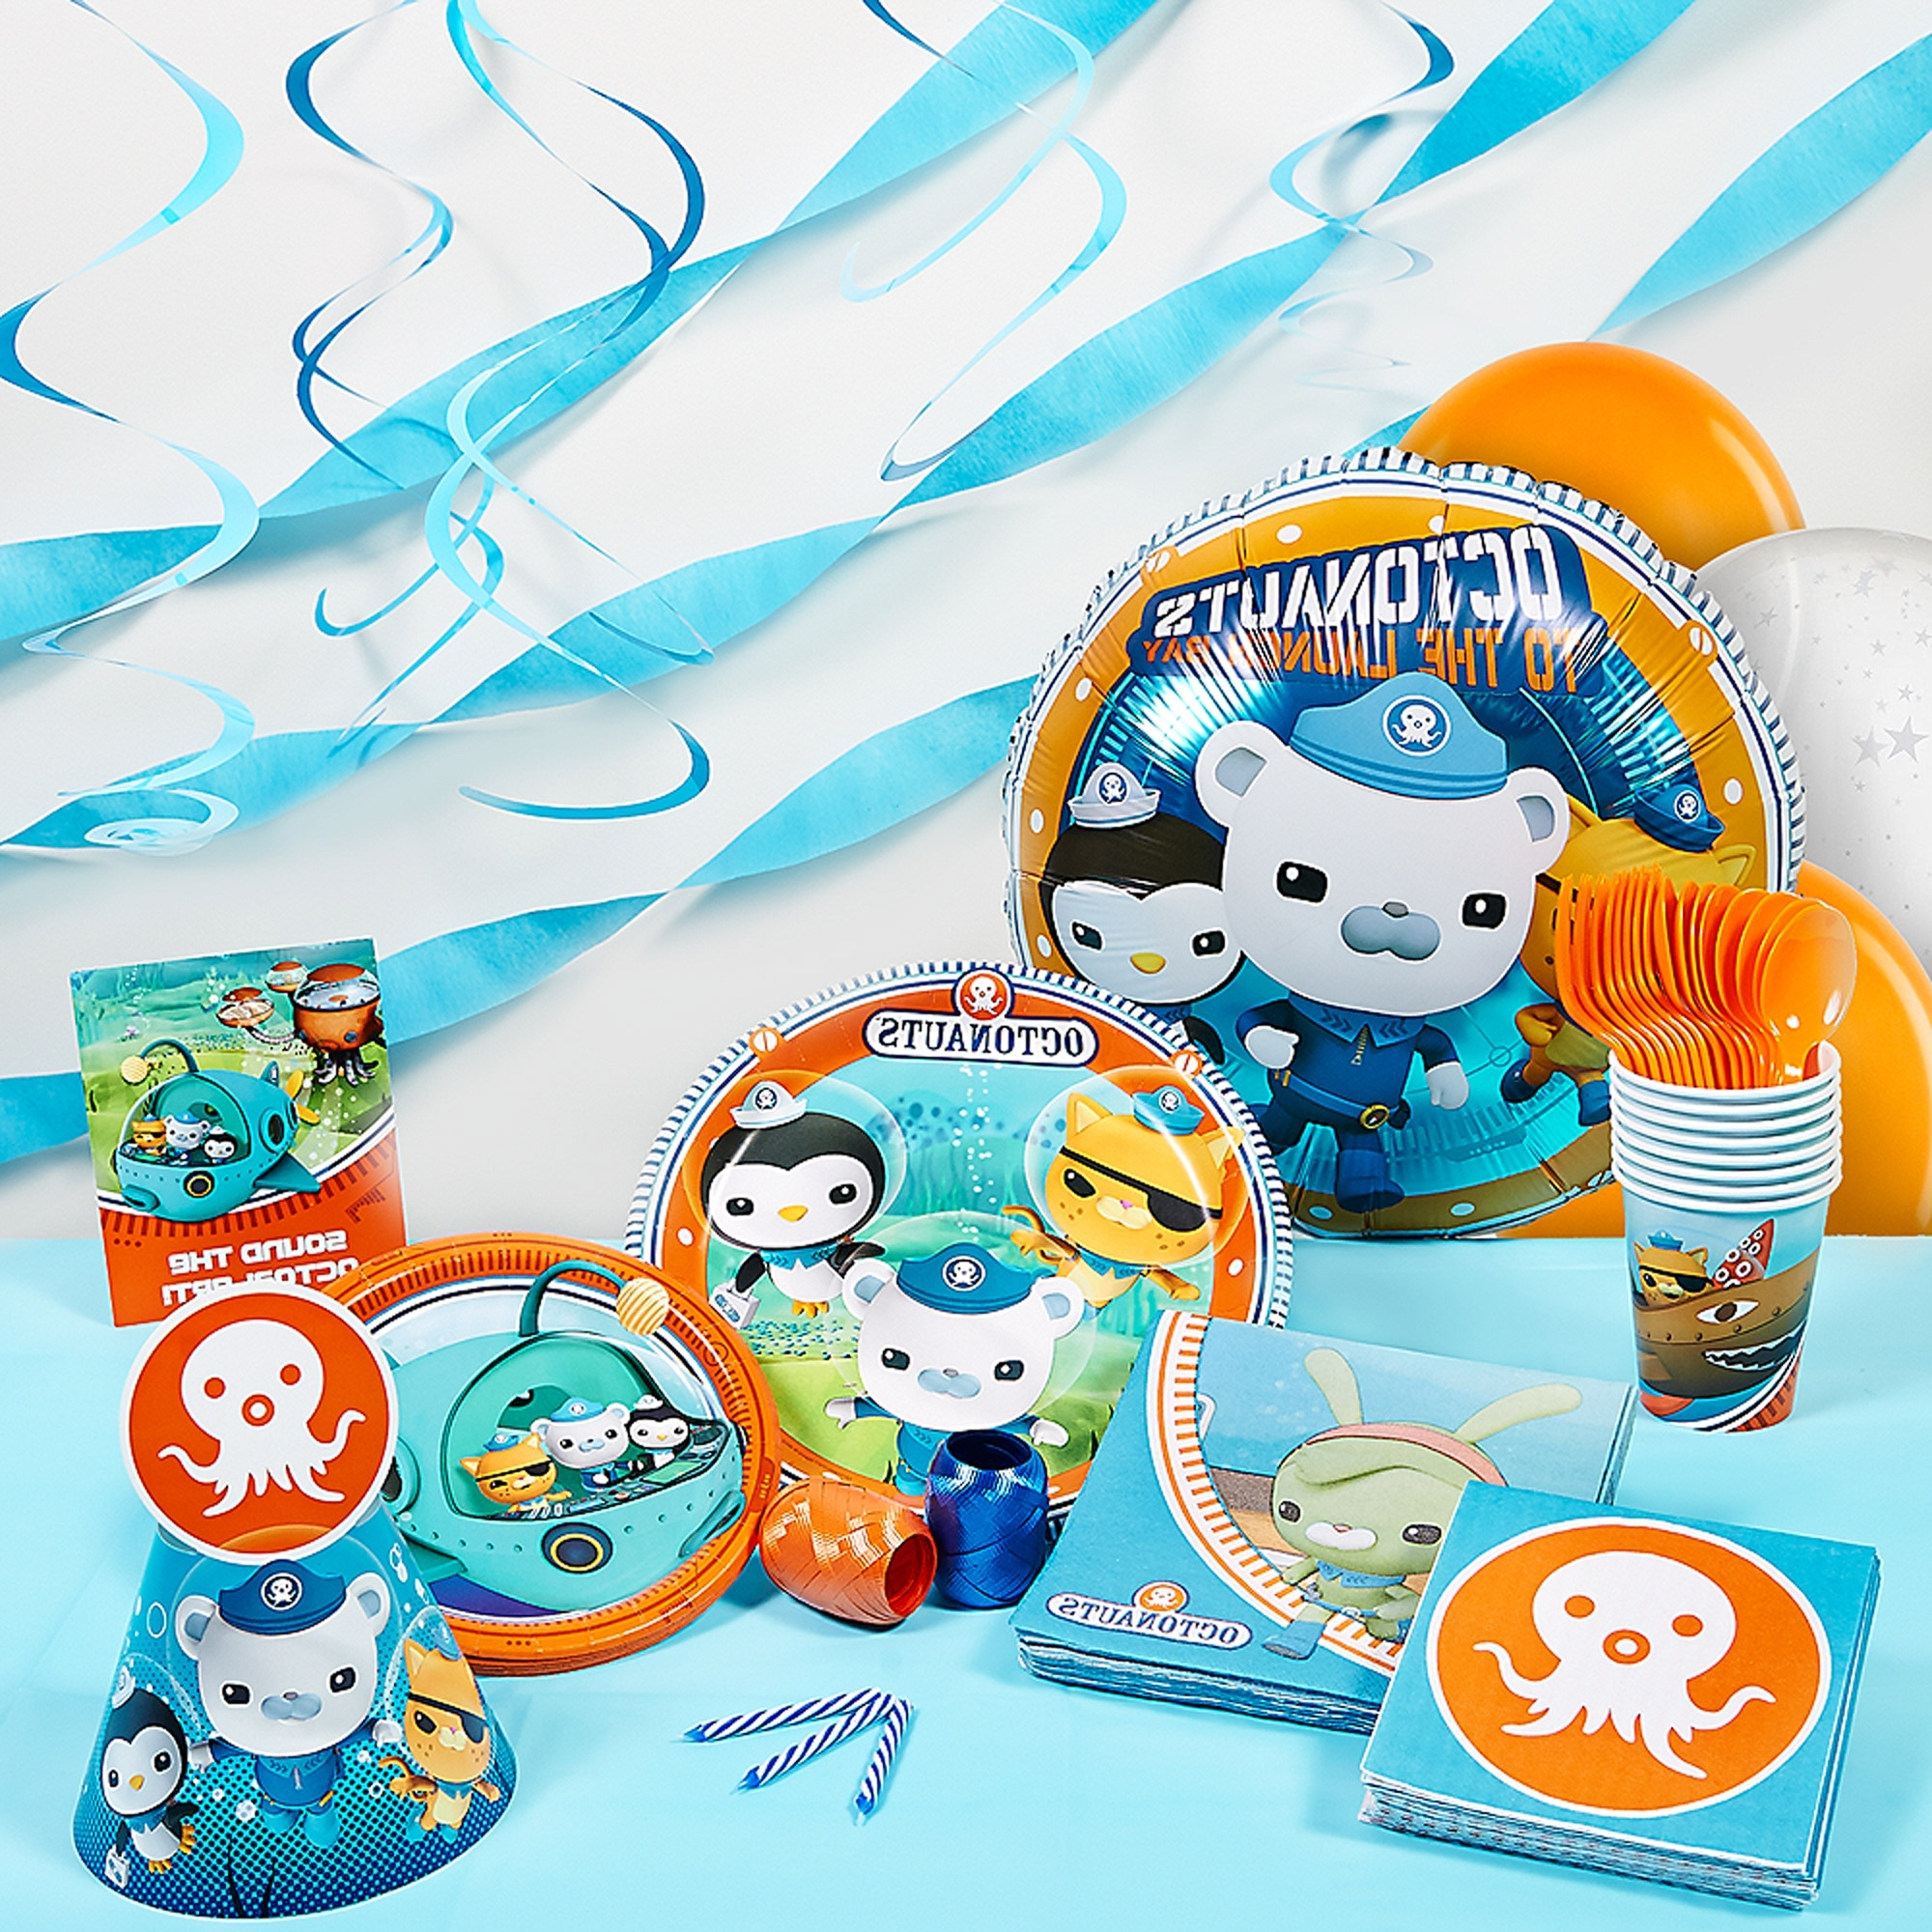 Octonauts Wall Art Regarding Well Known Octonauts Super Deluxe Party Kit – Walmart (View 5 of 15)